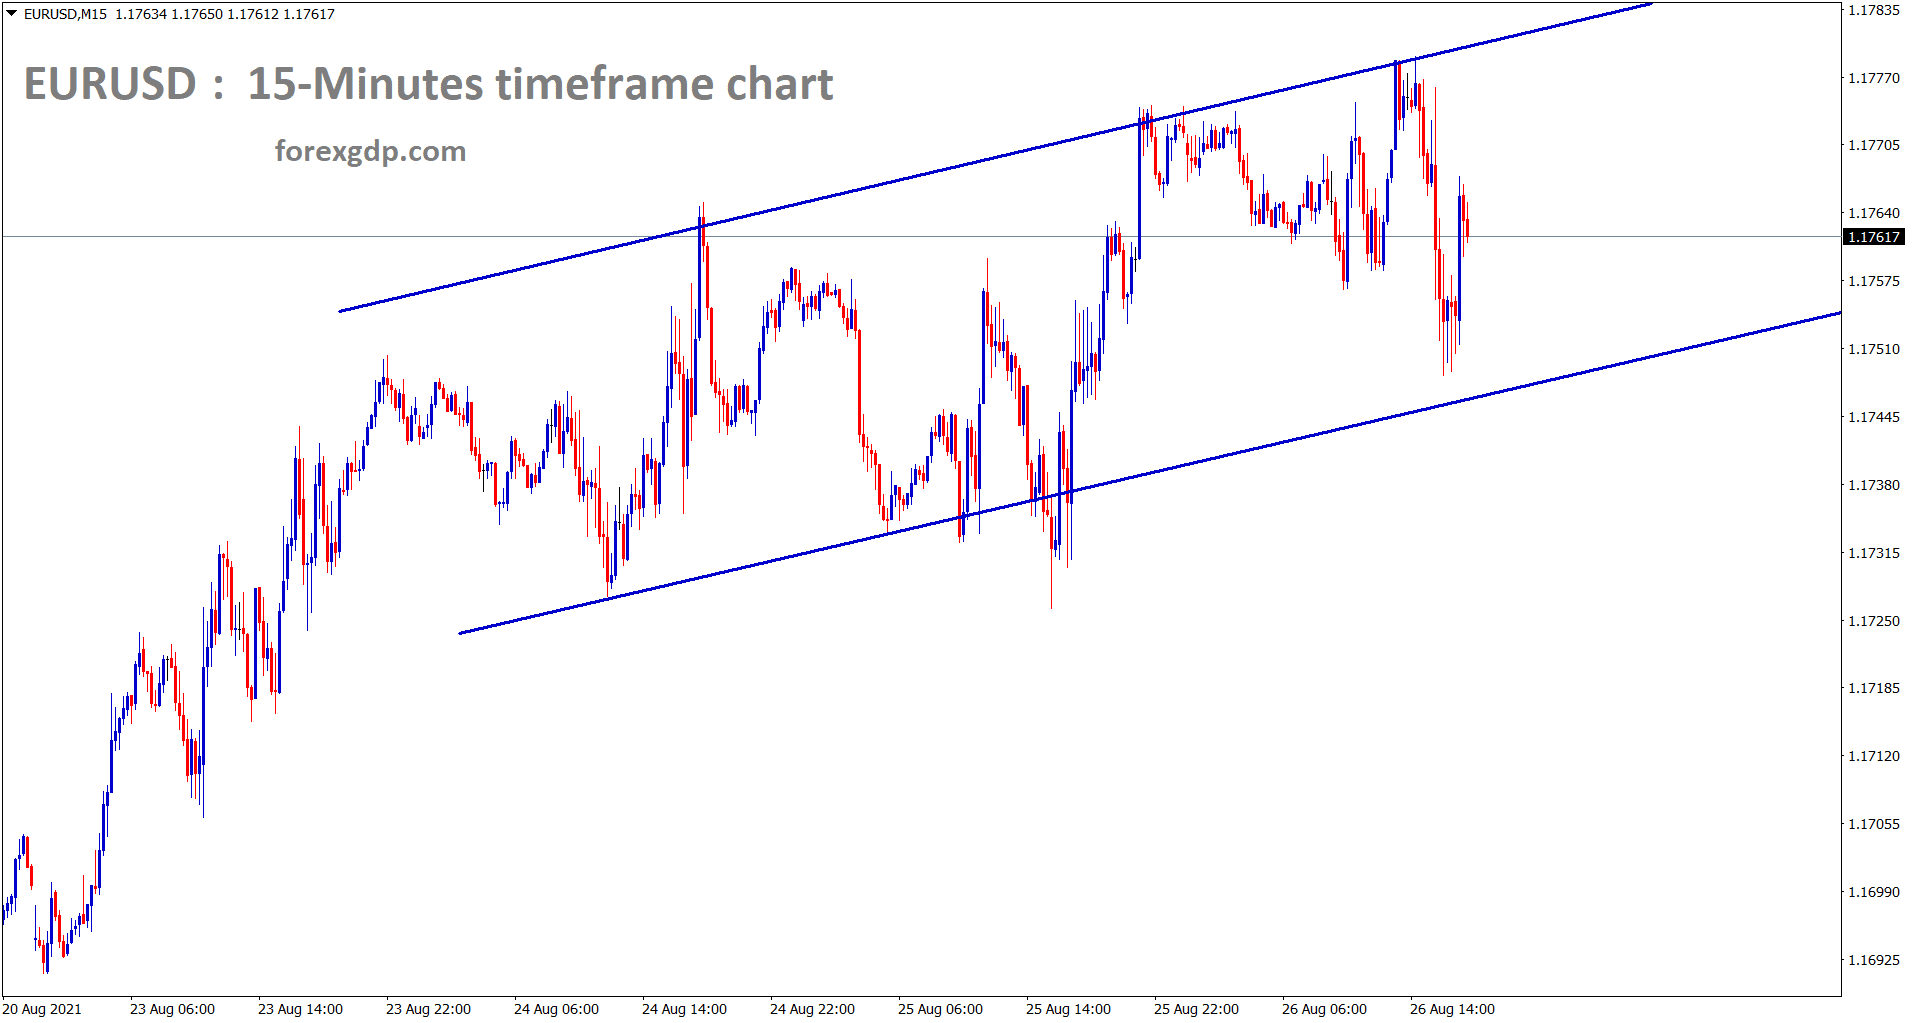 EURUSD is consolidating in a small channel range